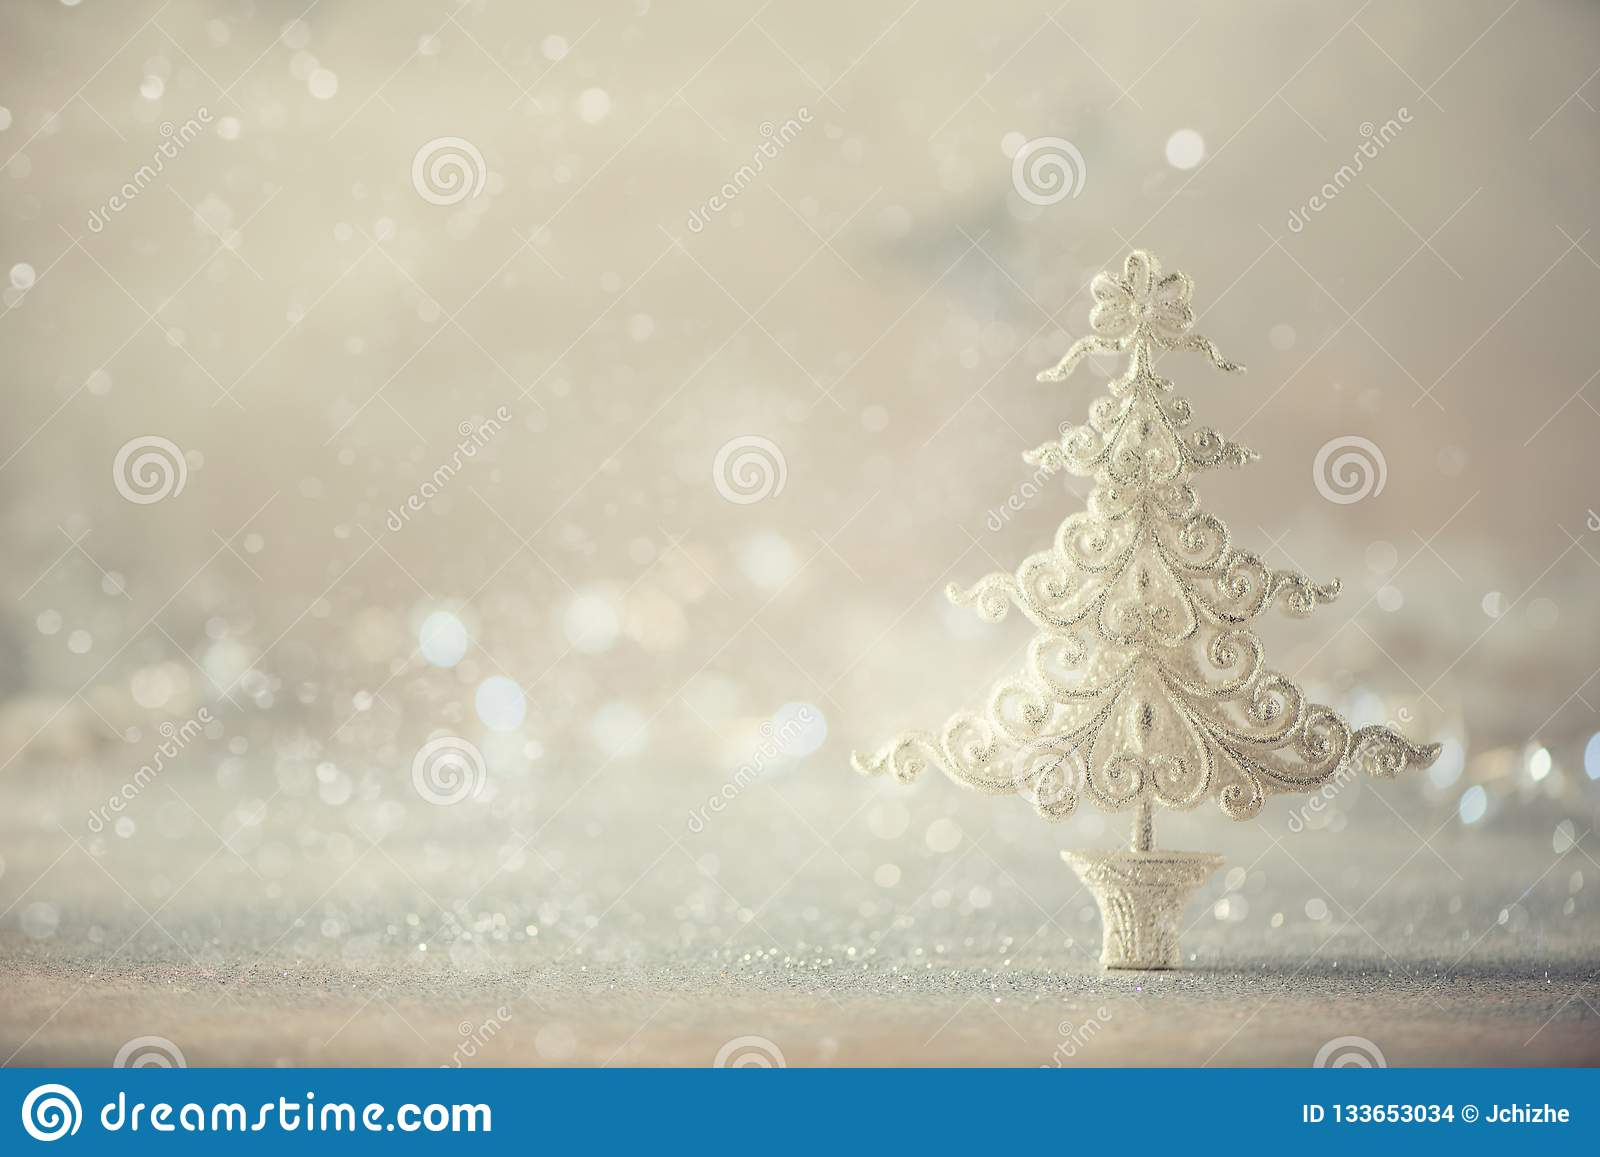 Silver glitter Christmas tree on grey background with lights bokeh, copy space. Greeting card for new year party. Festive holiday